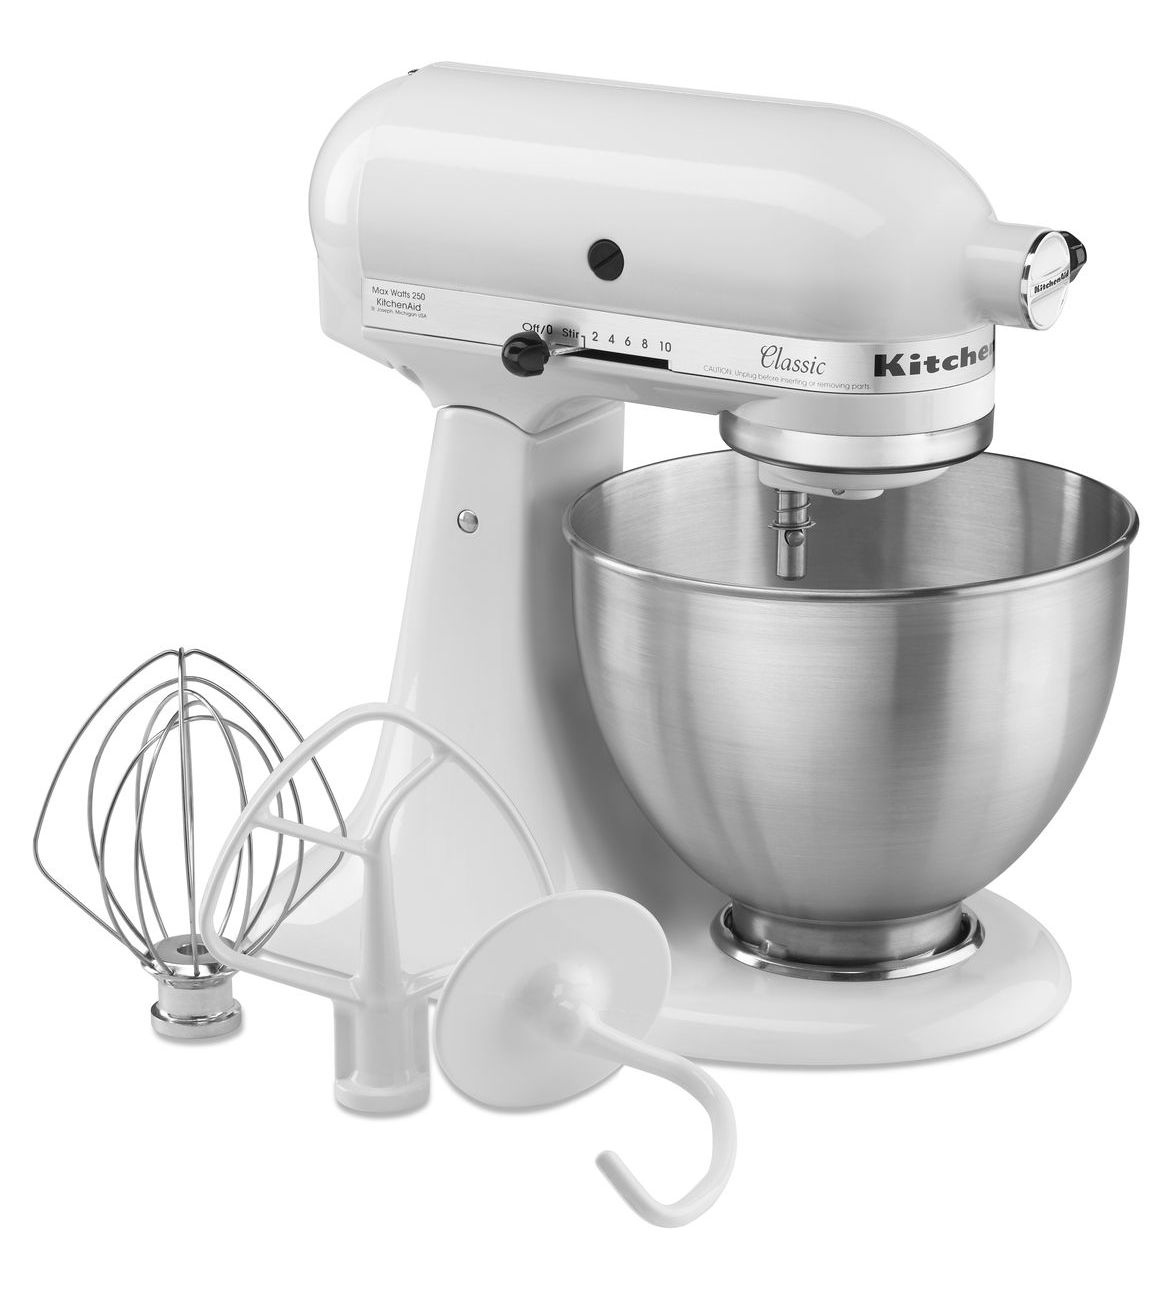 Kitchenaid ultra power mixer | Kitchen ideas